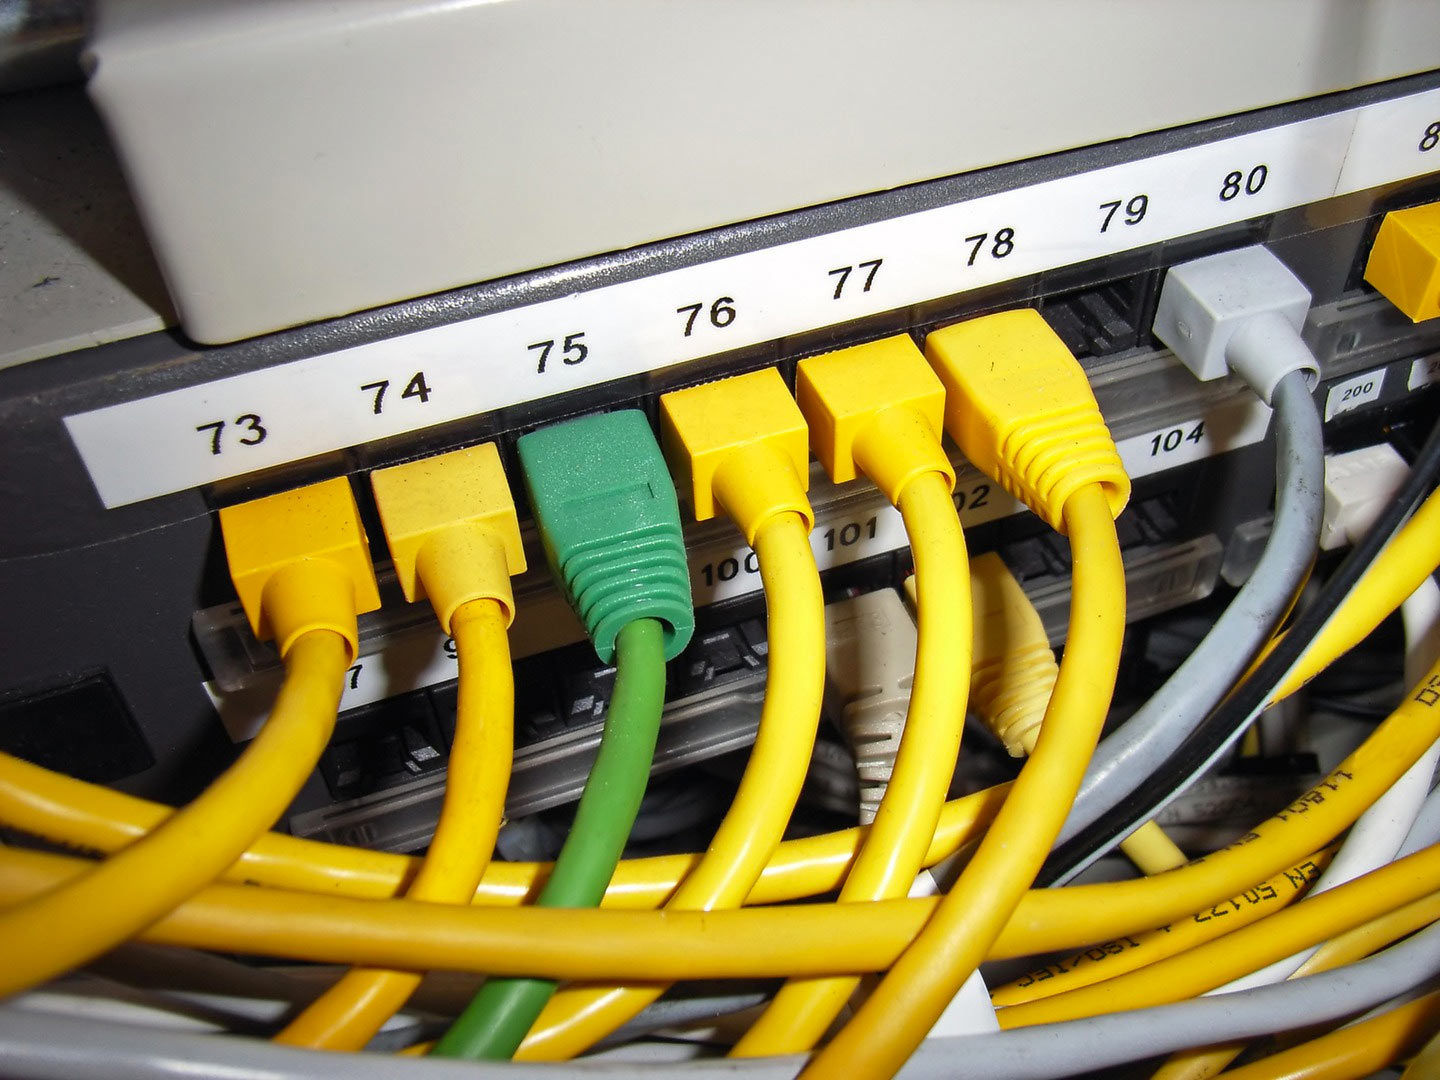 117 Network Cabling Wiring Cable Computer And Examples Lightbox Image